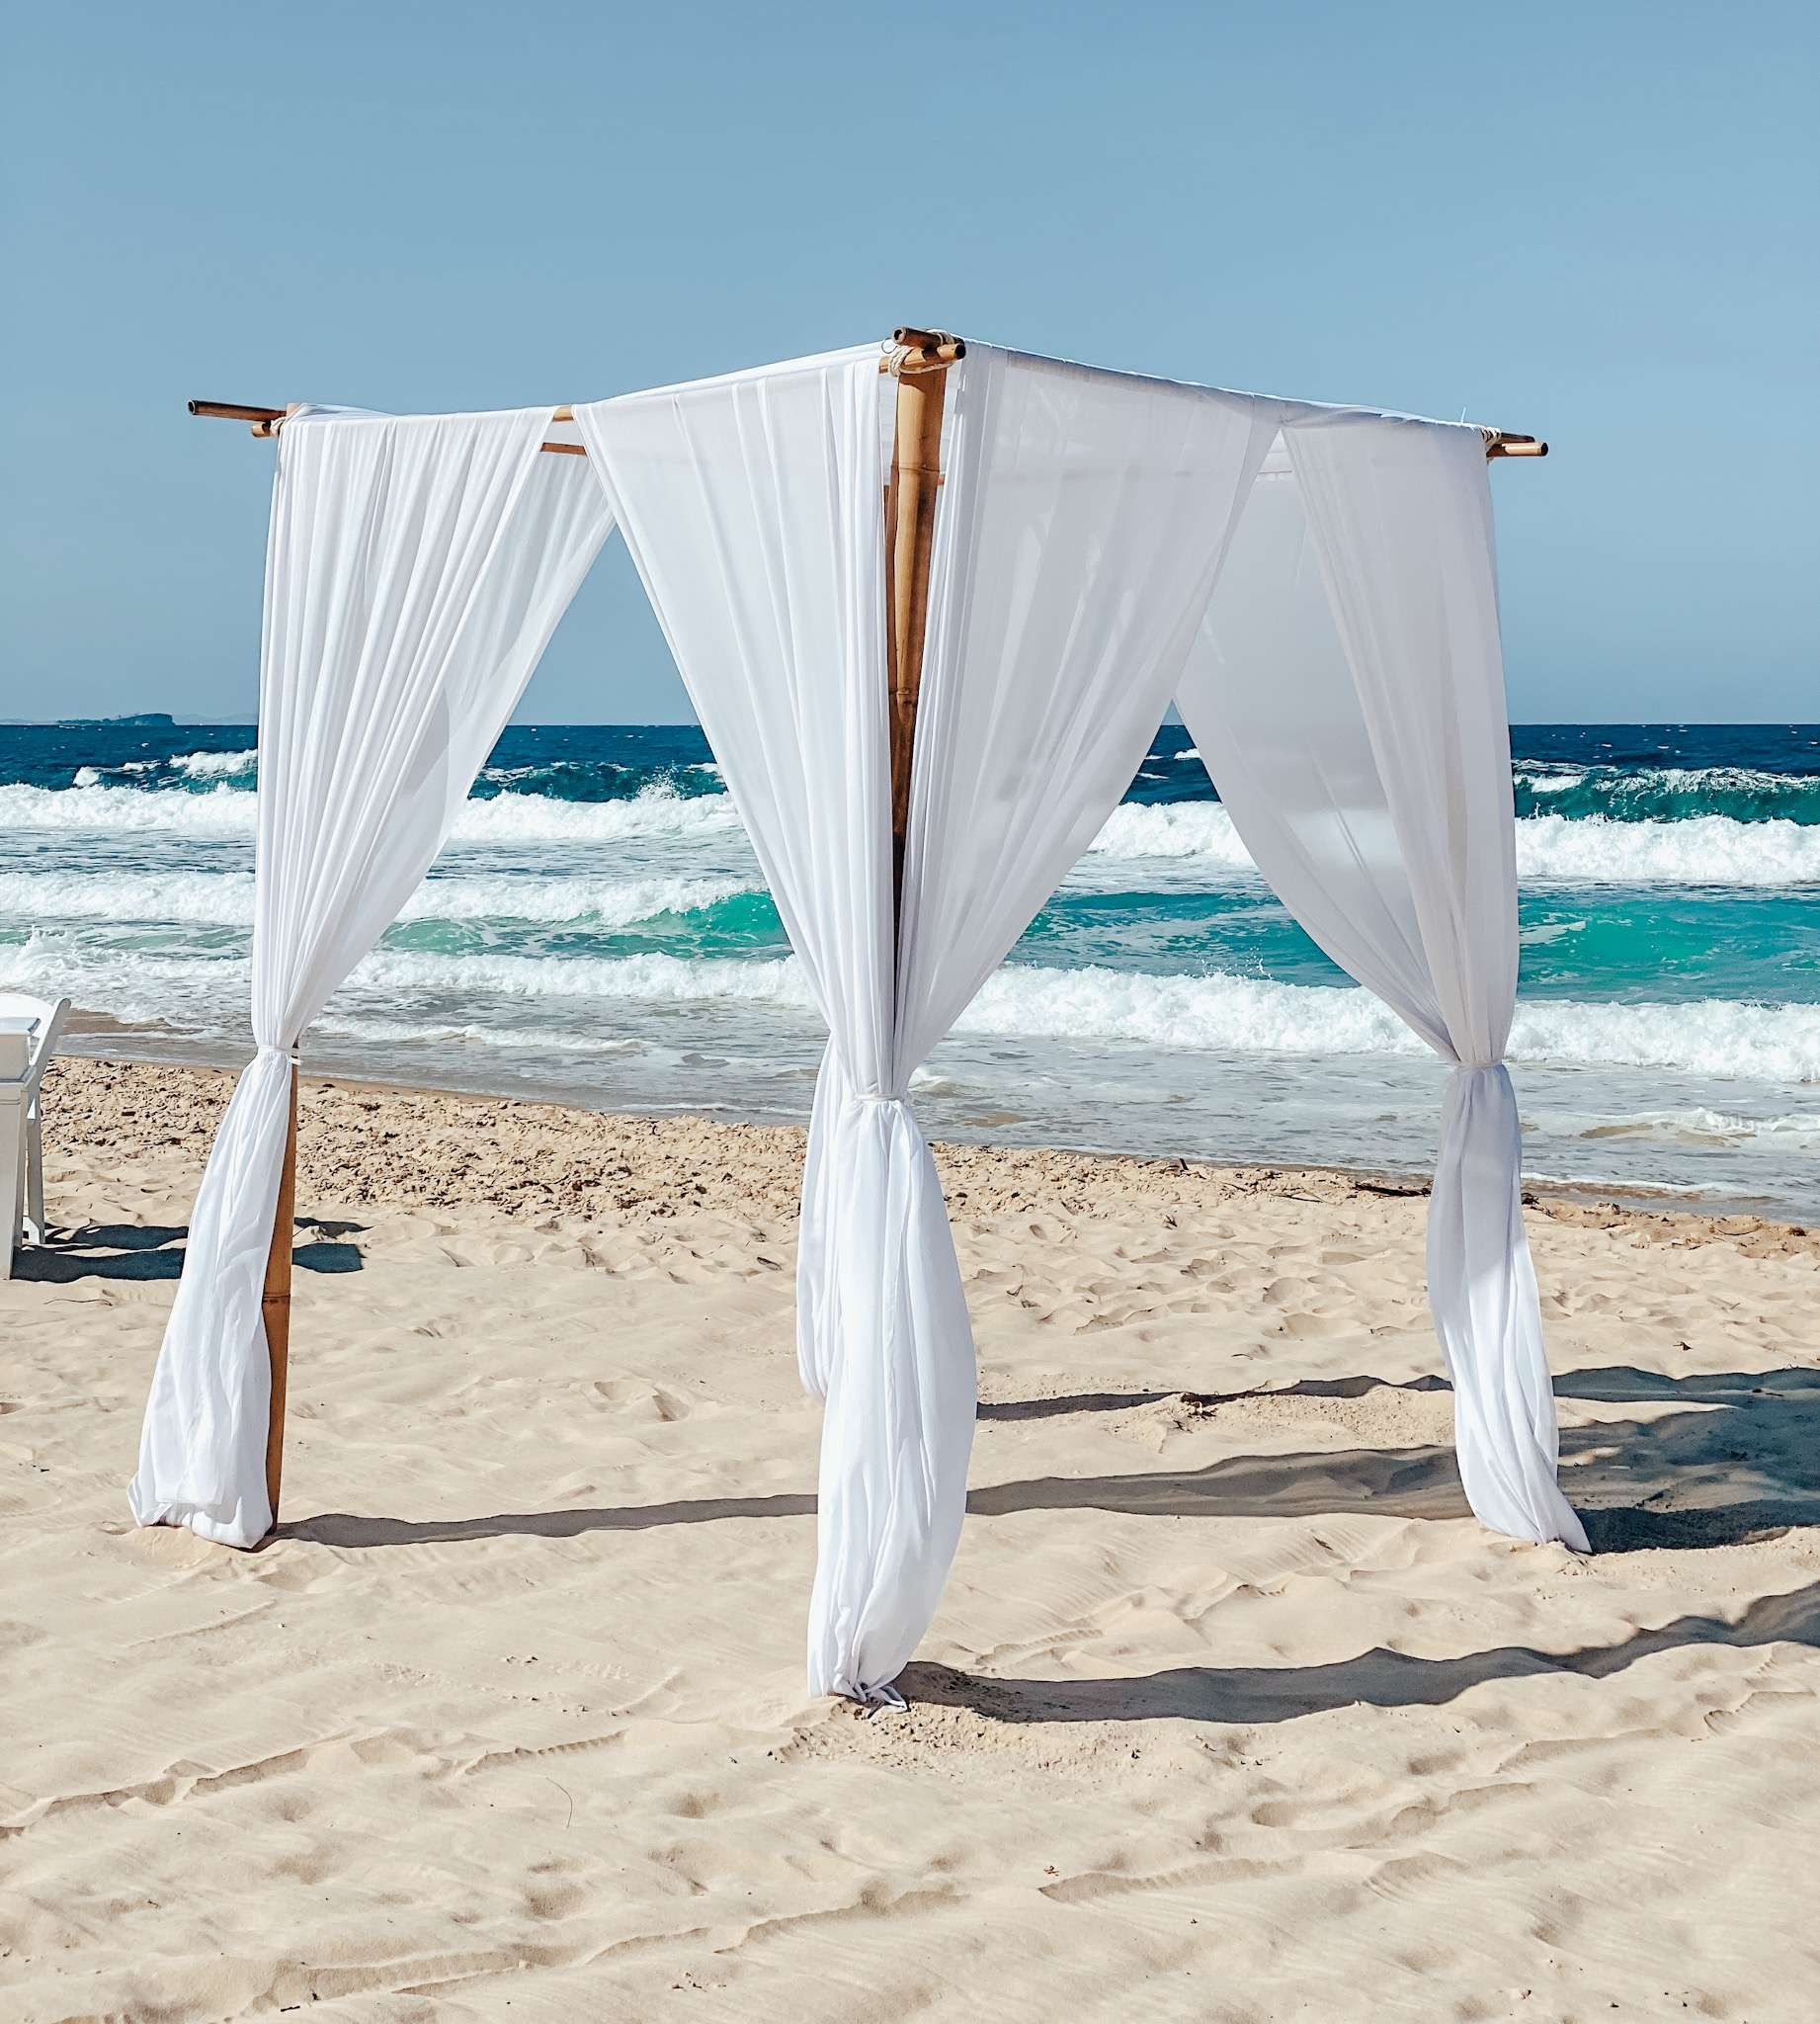 Night Beach Wedding Ceremony Ideas: Blush Weddings & Event Planner